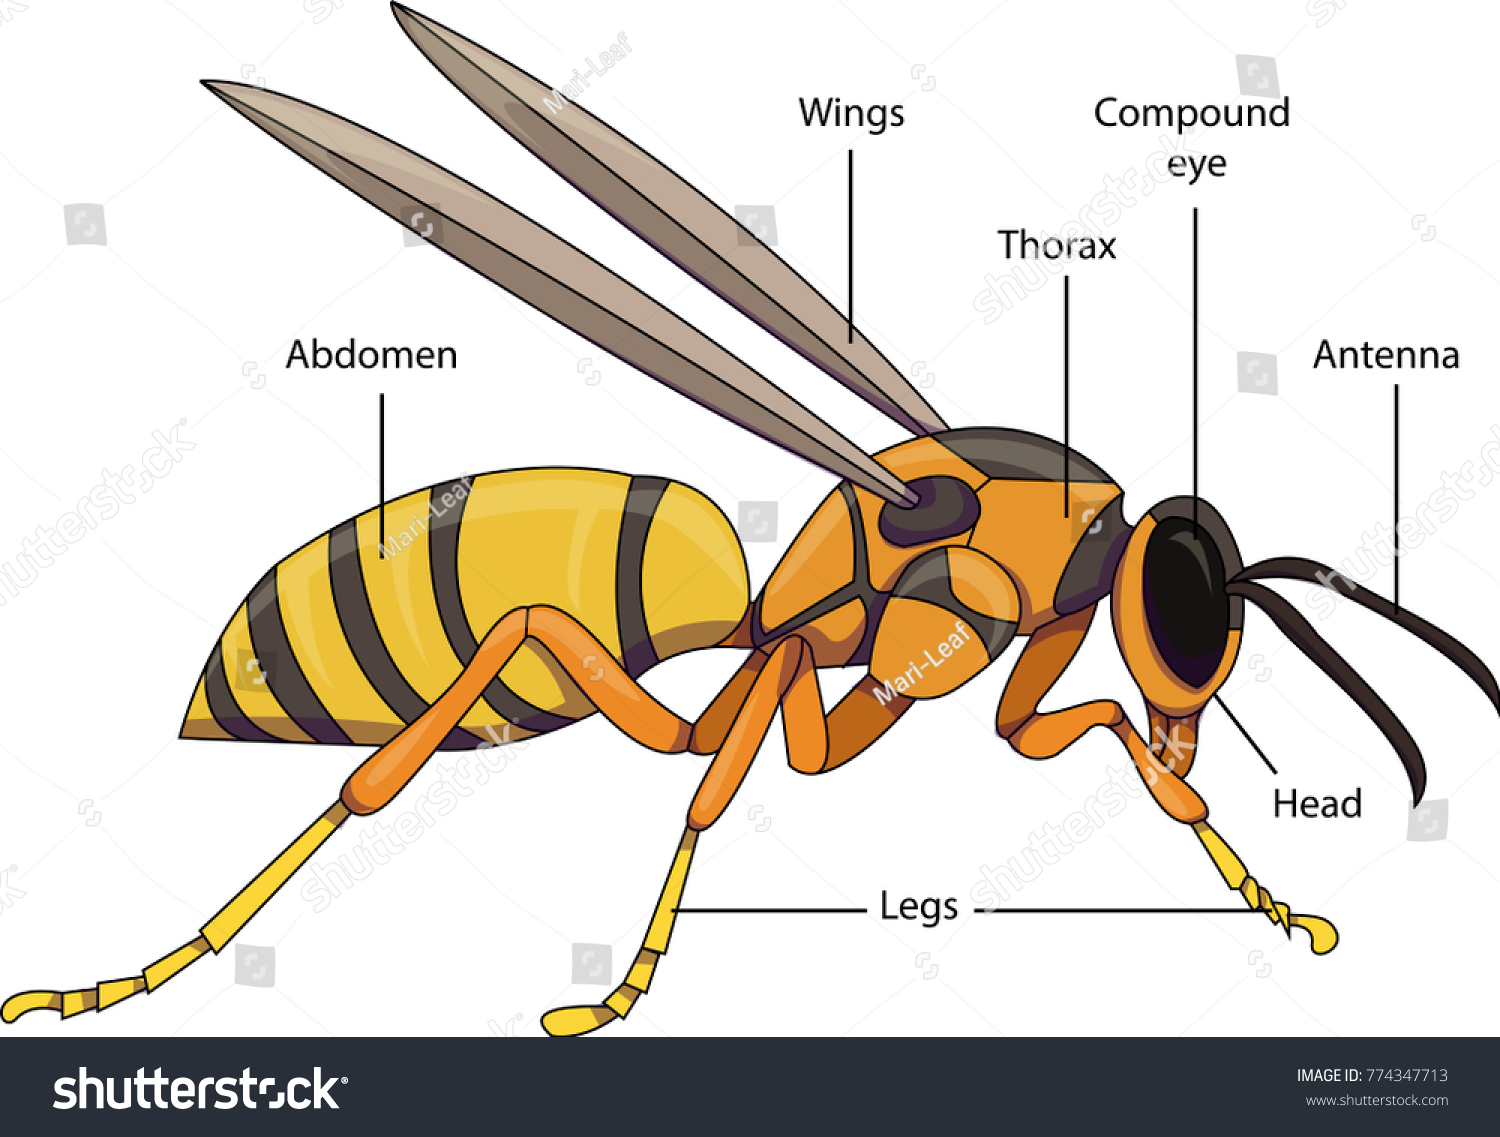 hornet anatomy diagram 1957 chevy truck wiring wasp mouth nice place to get